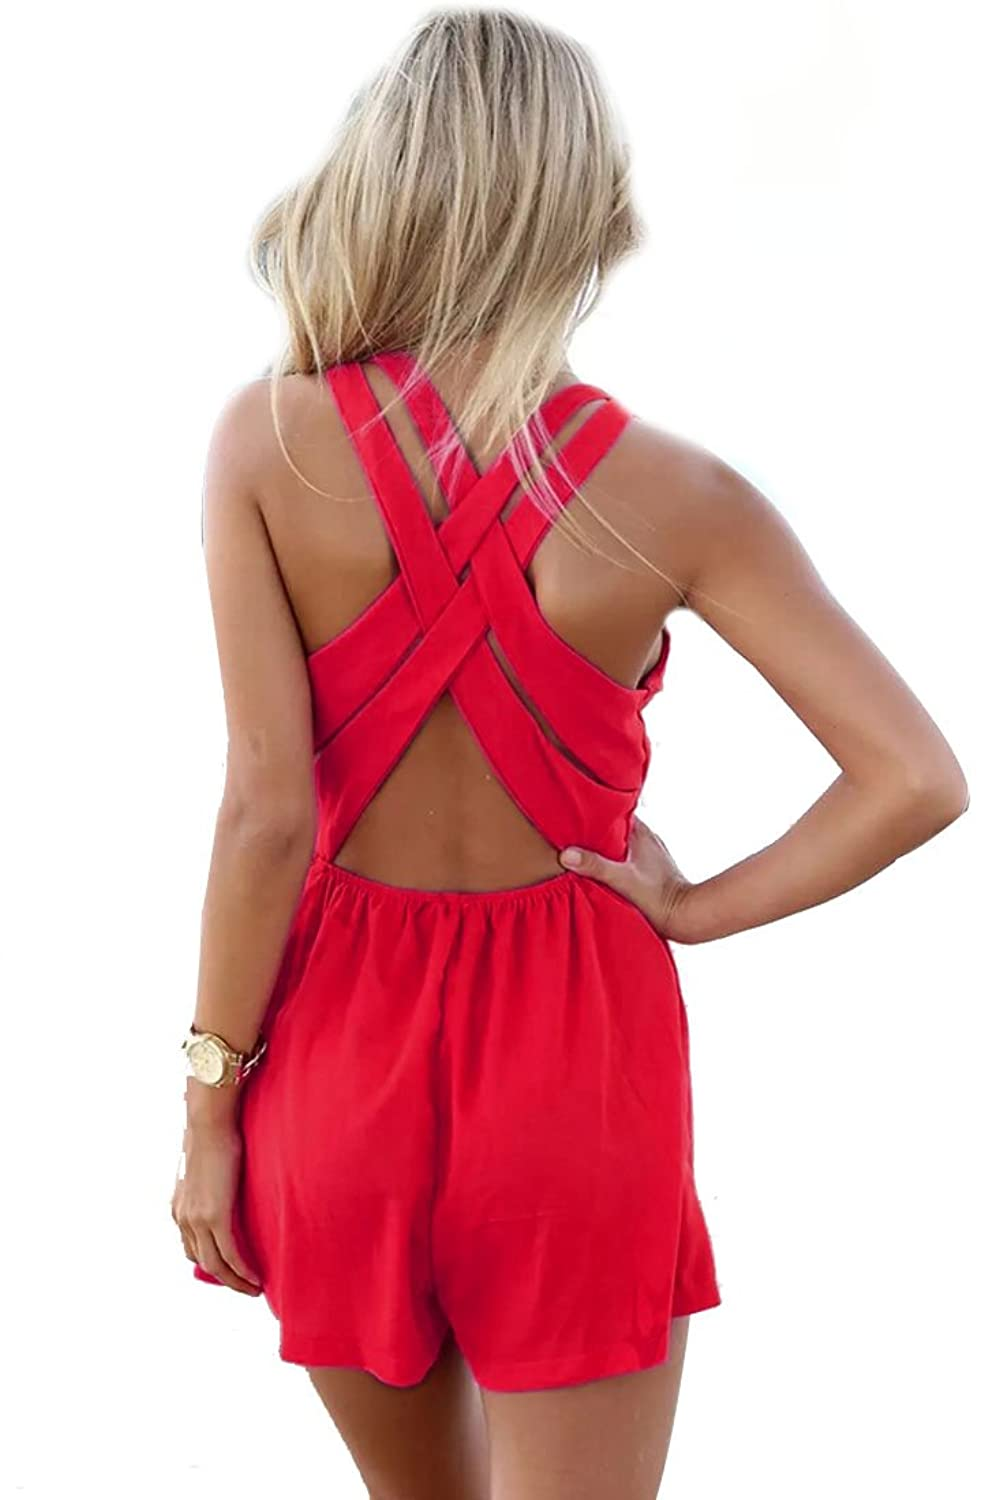 ACHICGIRL Womens Fabulous Cutout Strappy Rompers, Hot Pink, Medium